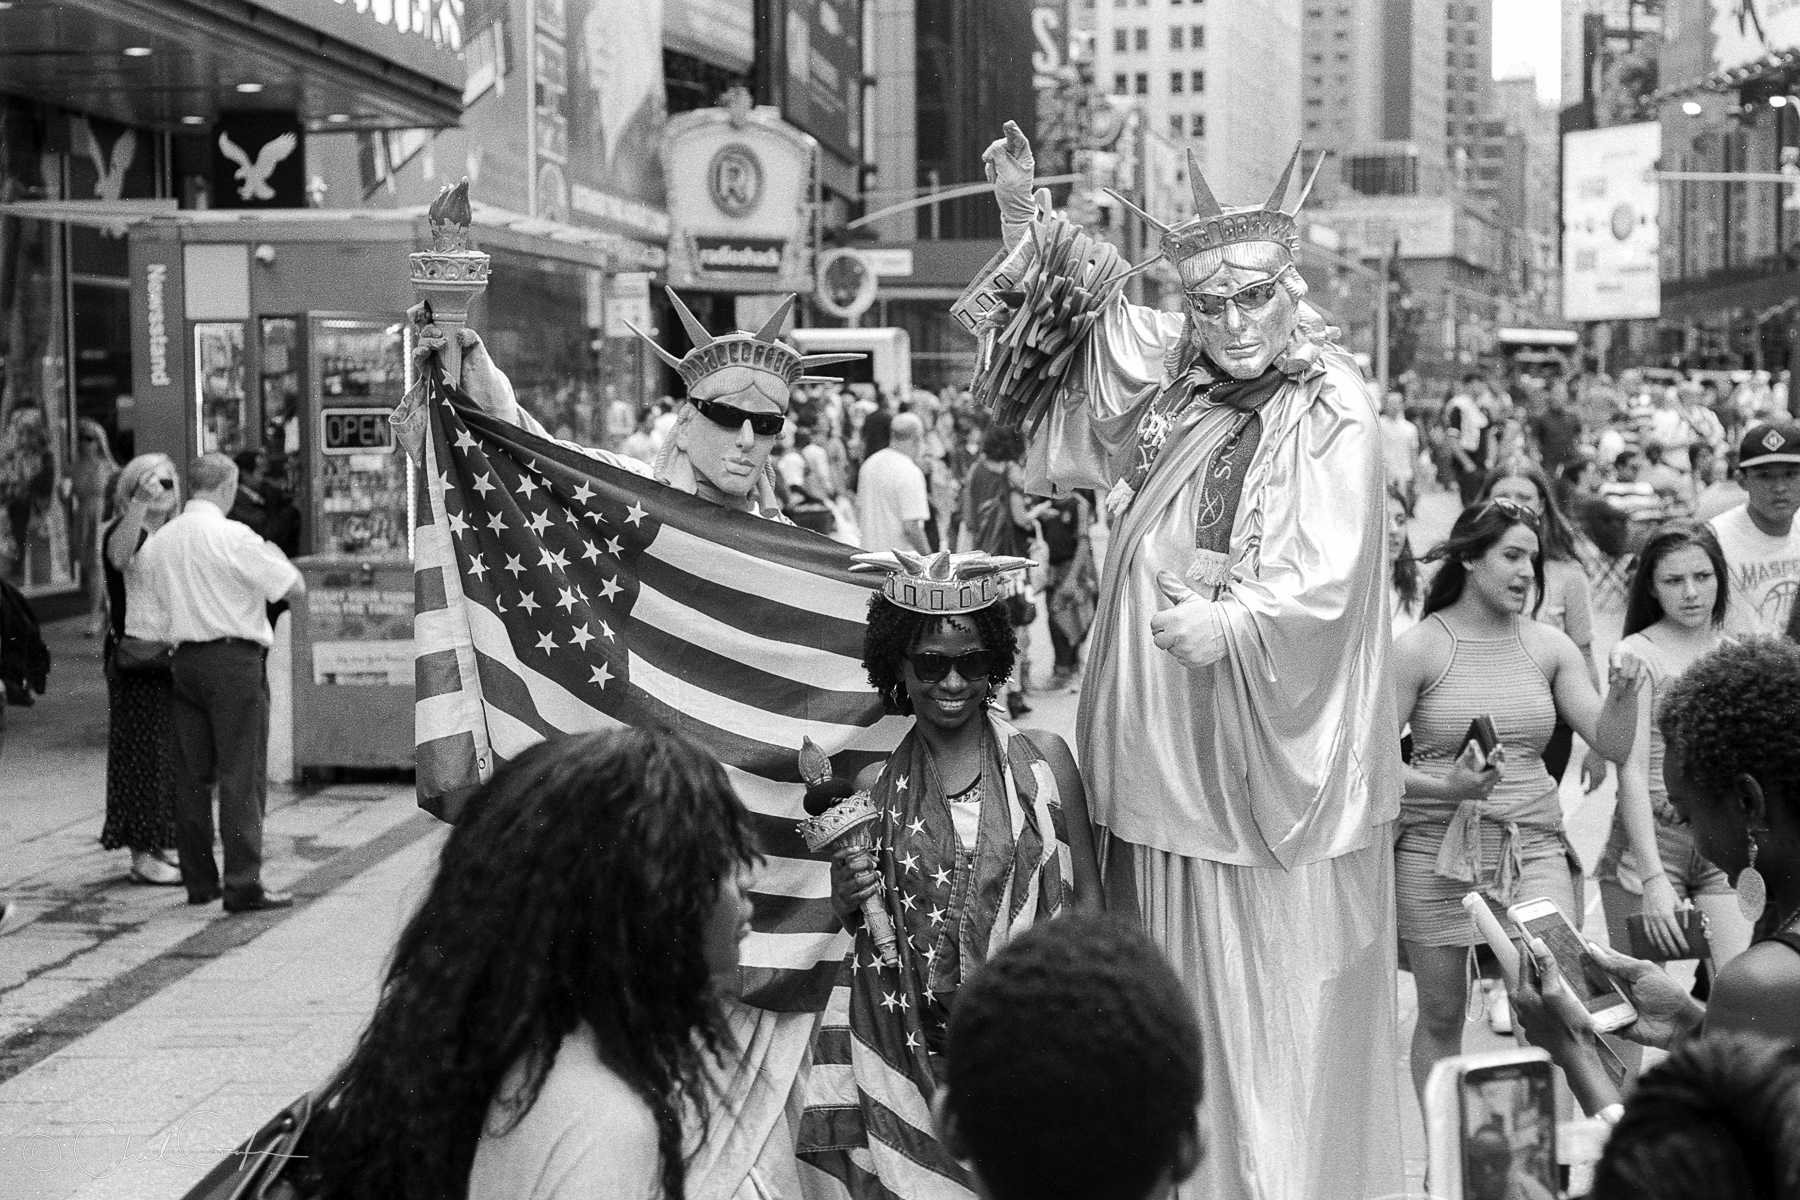 Statues of Liberty in Times Square by Chad Gayle (Image)